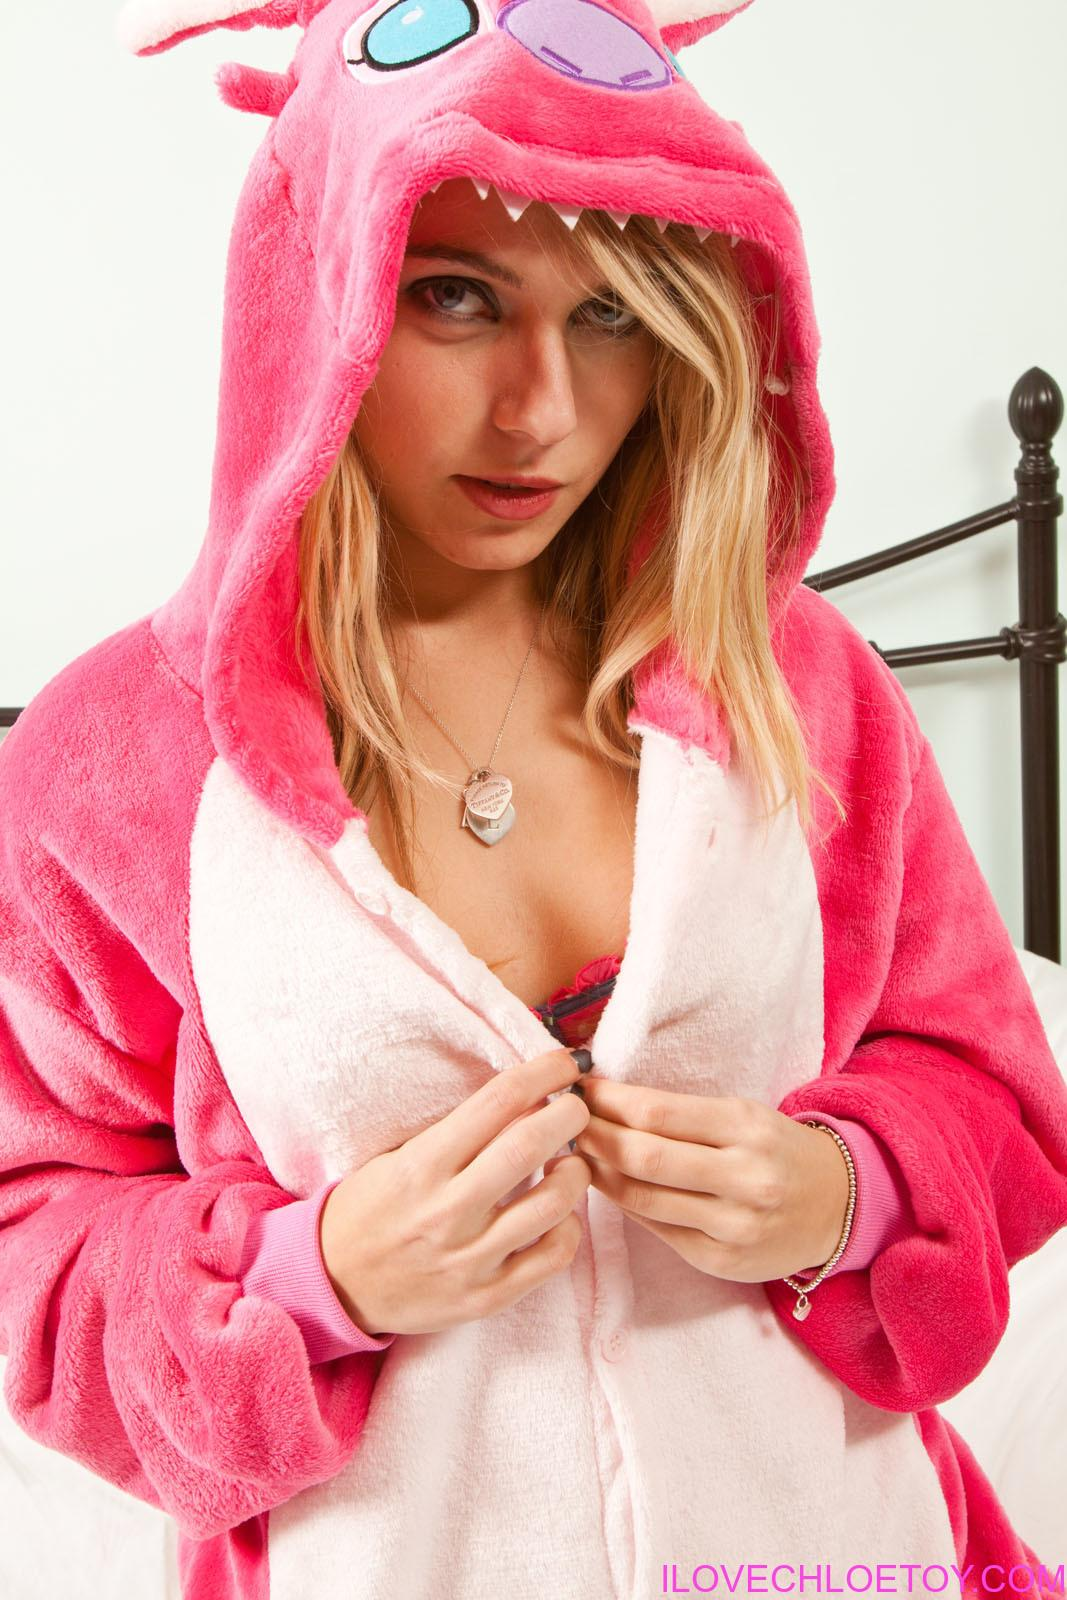 Hot blonde chick Chloe Toy removes her onesie after going for a walk  1829071